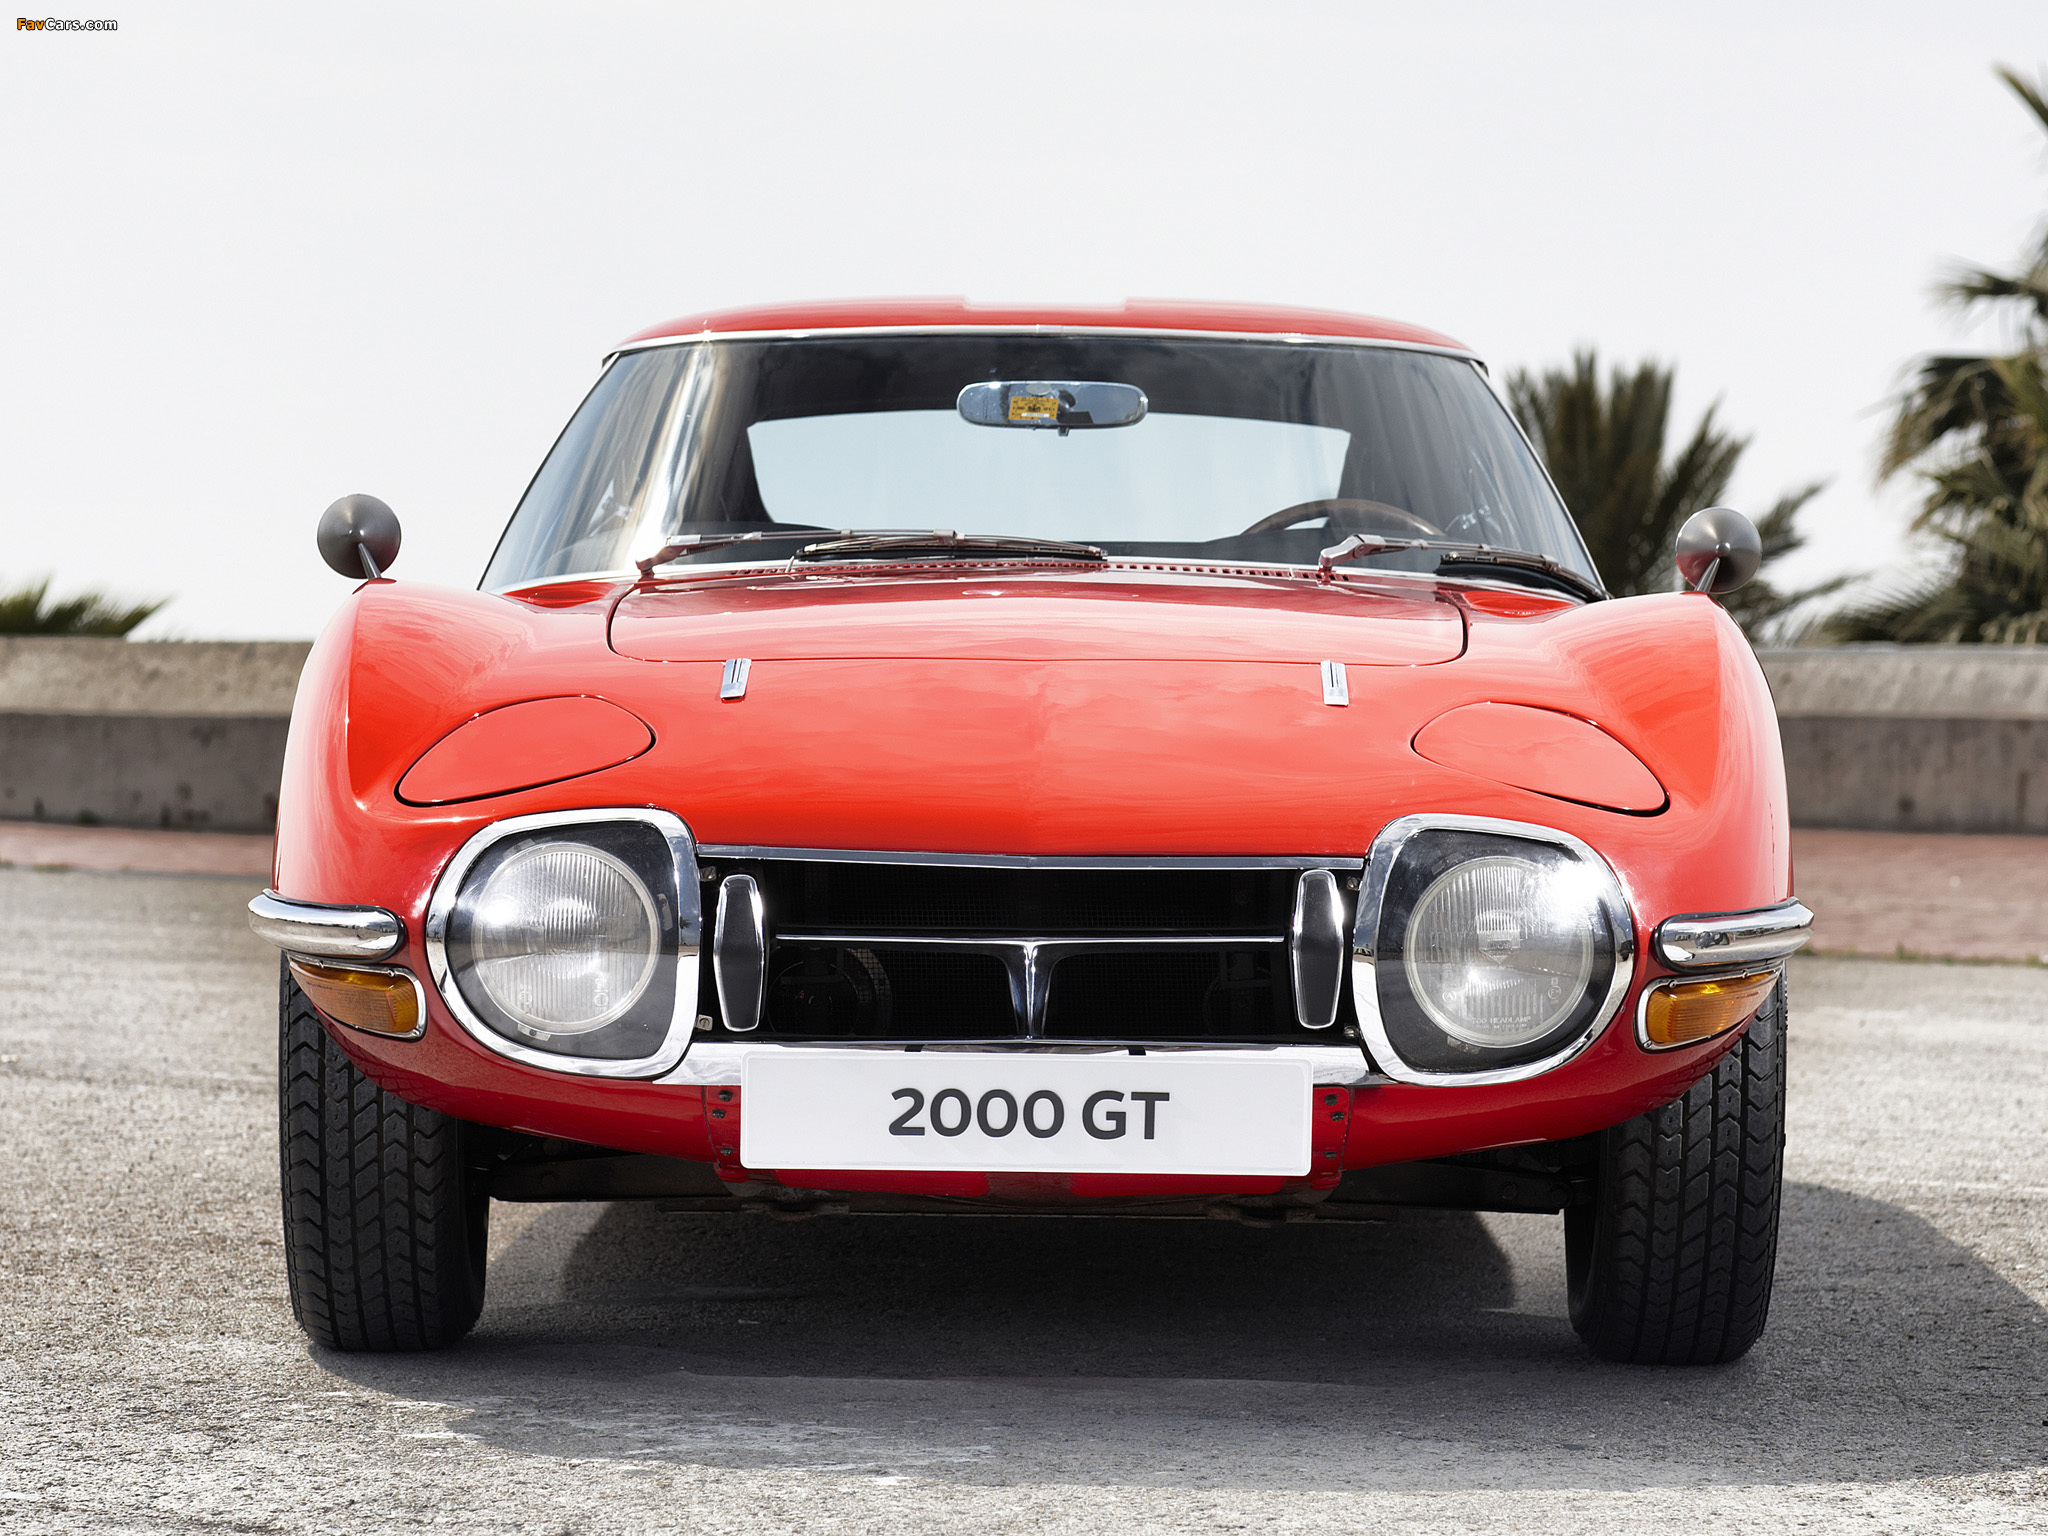 Pictures Of Toyota 2000gt Mf10 1967 70 2048x1536